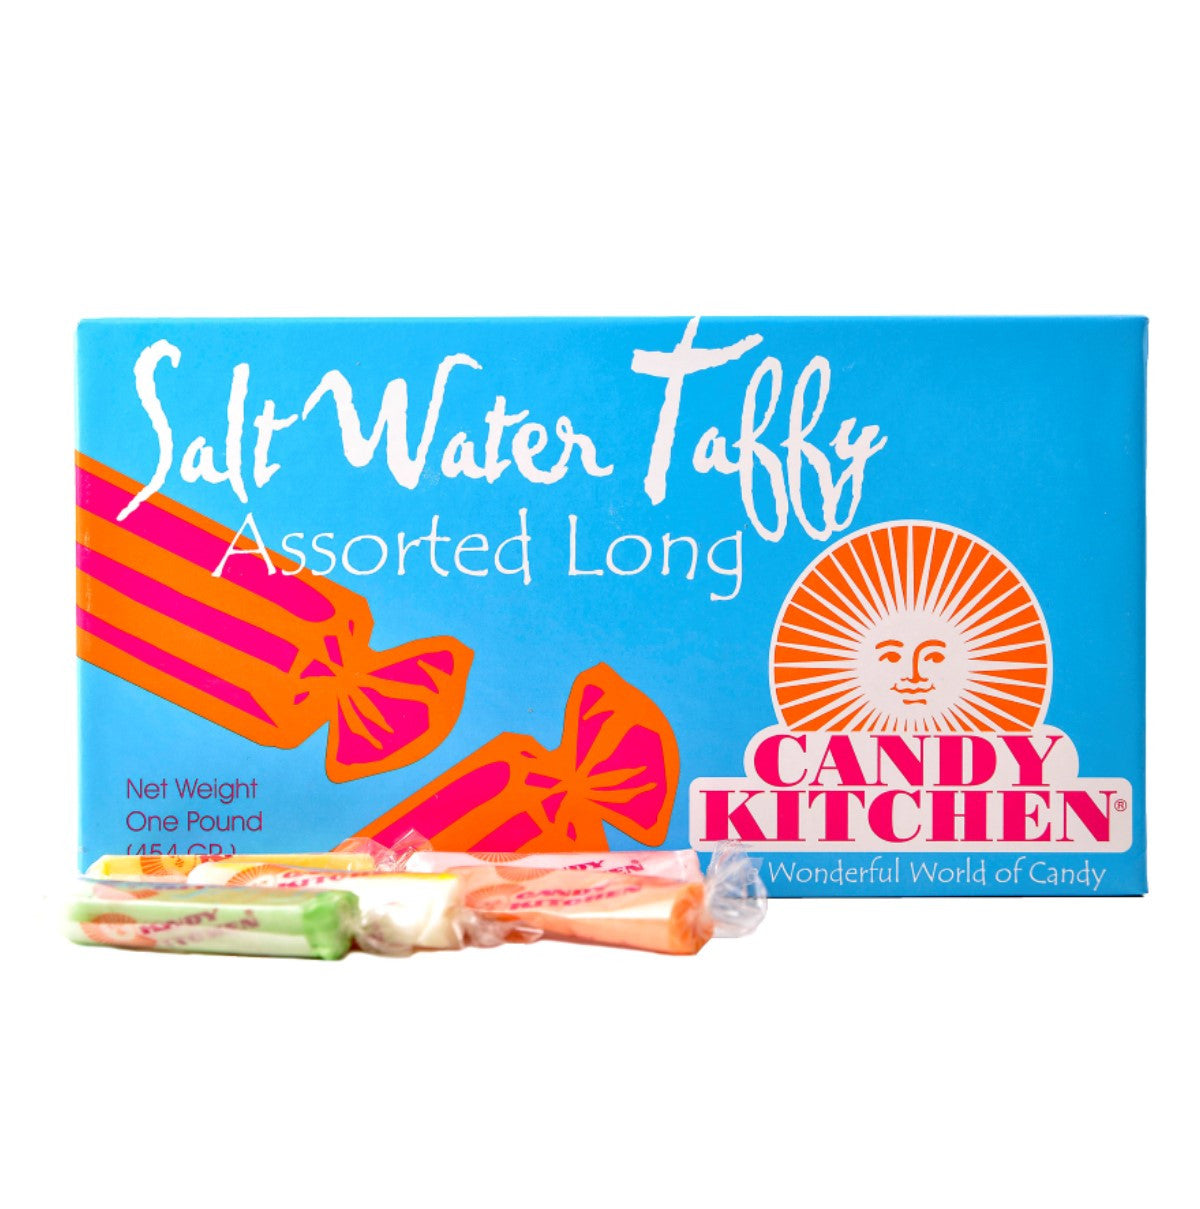 1 lb assorted long taffy - Candy Kitchen